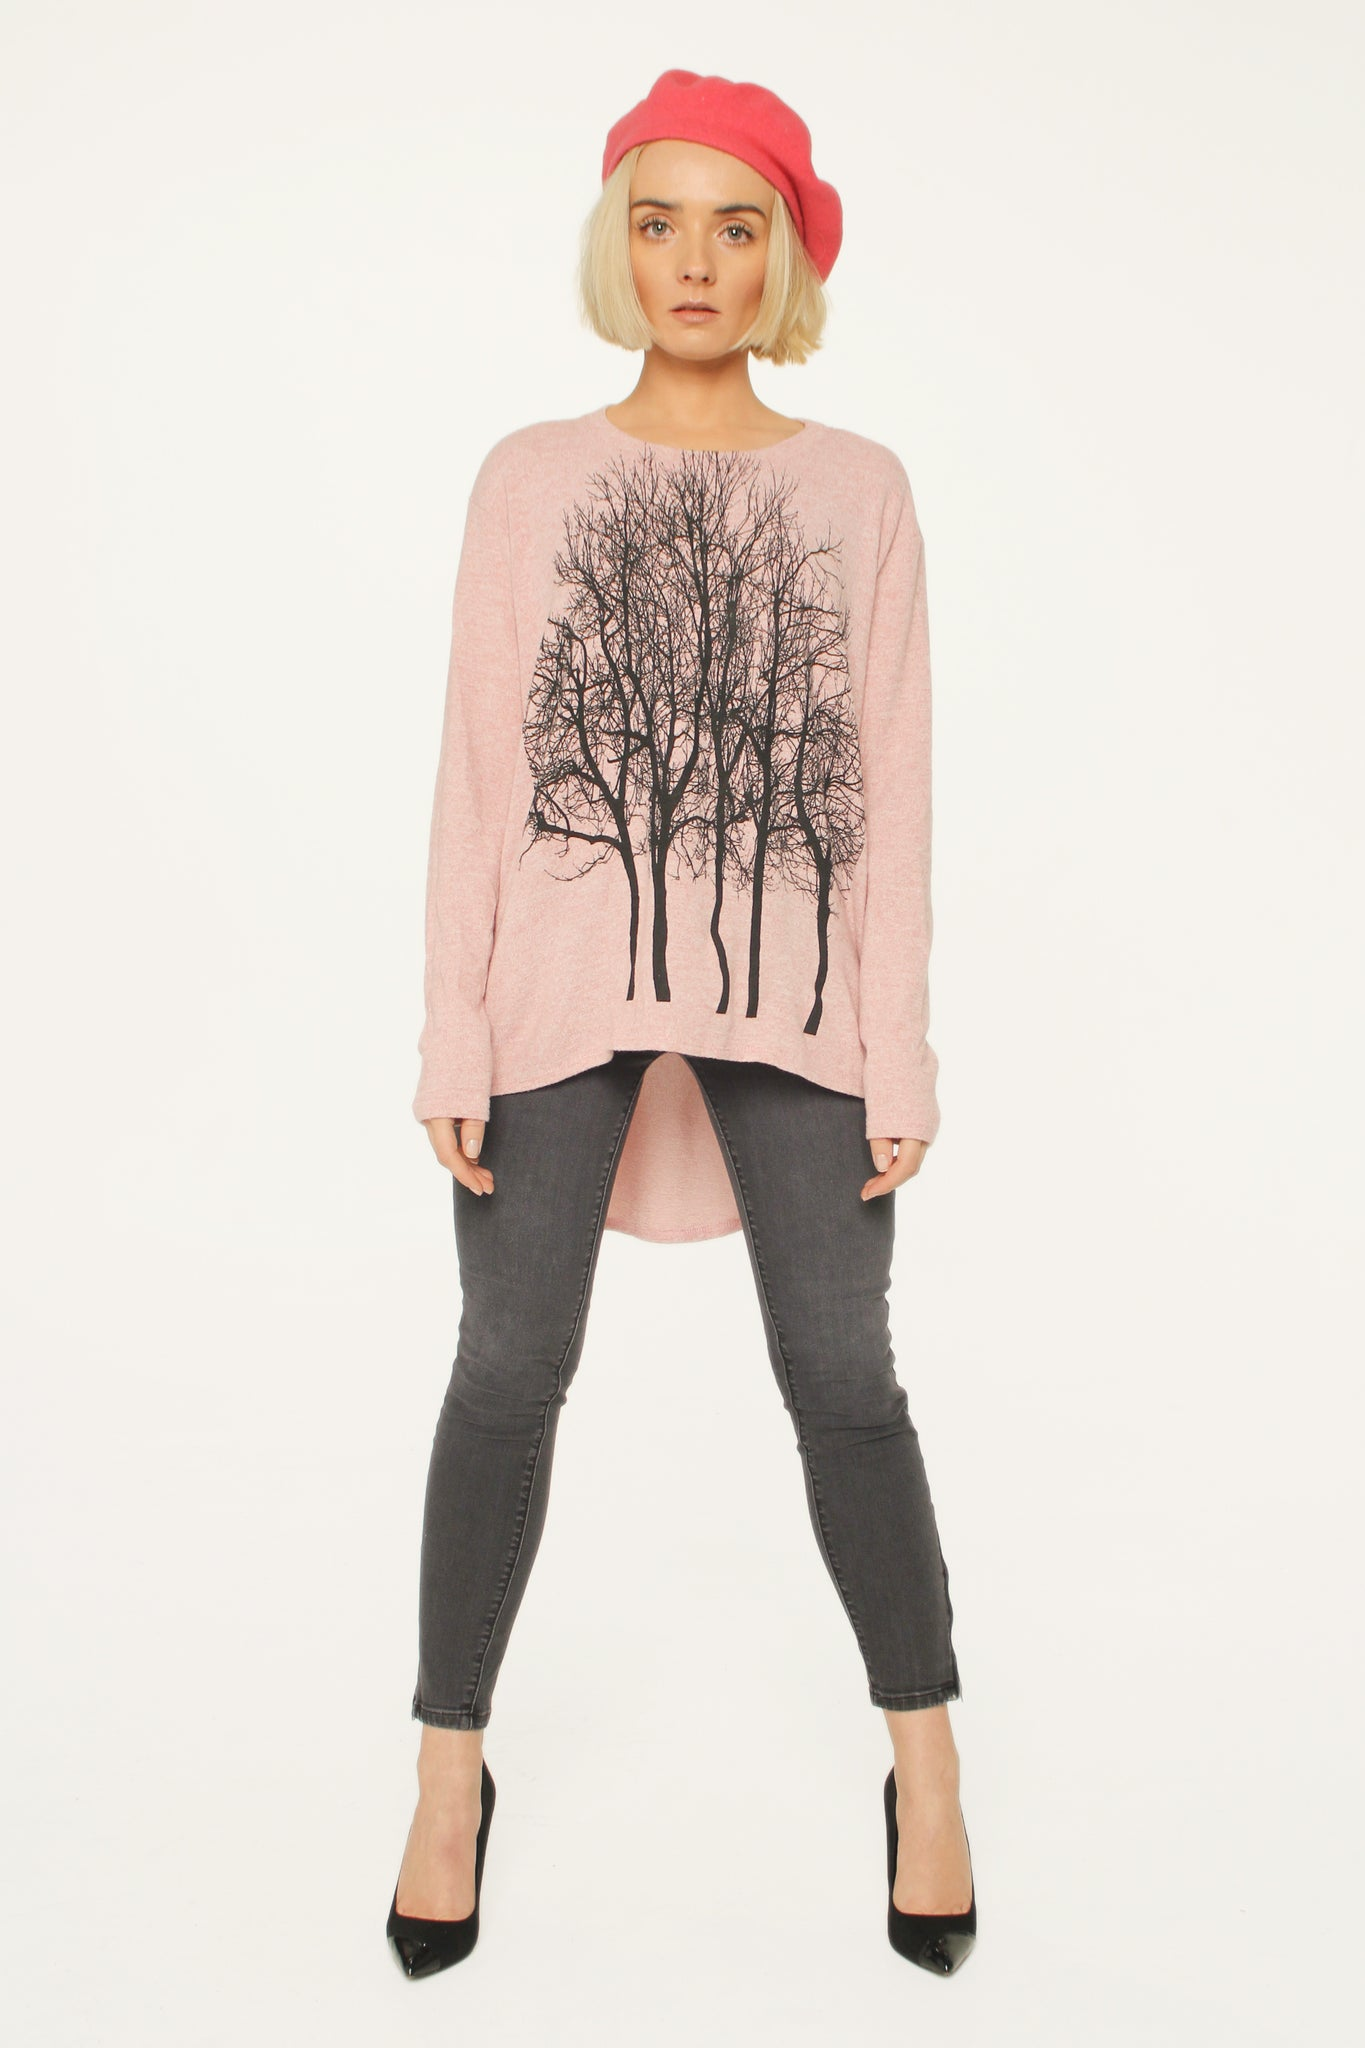 Fairytale Tree Fuzzy Sweater-Pink